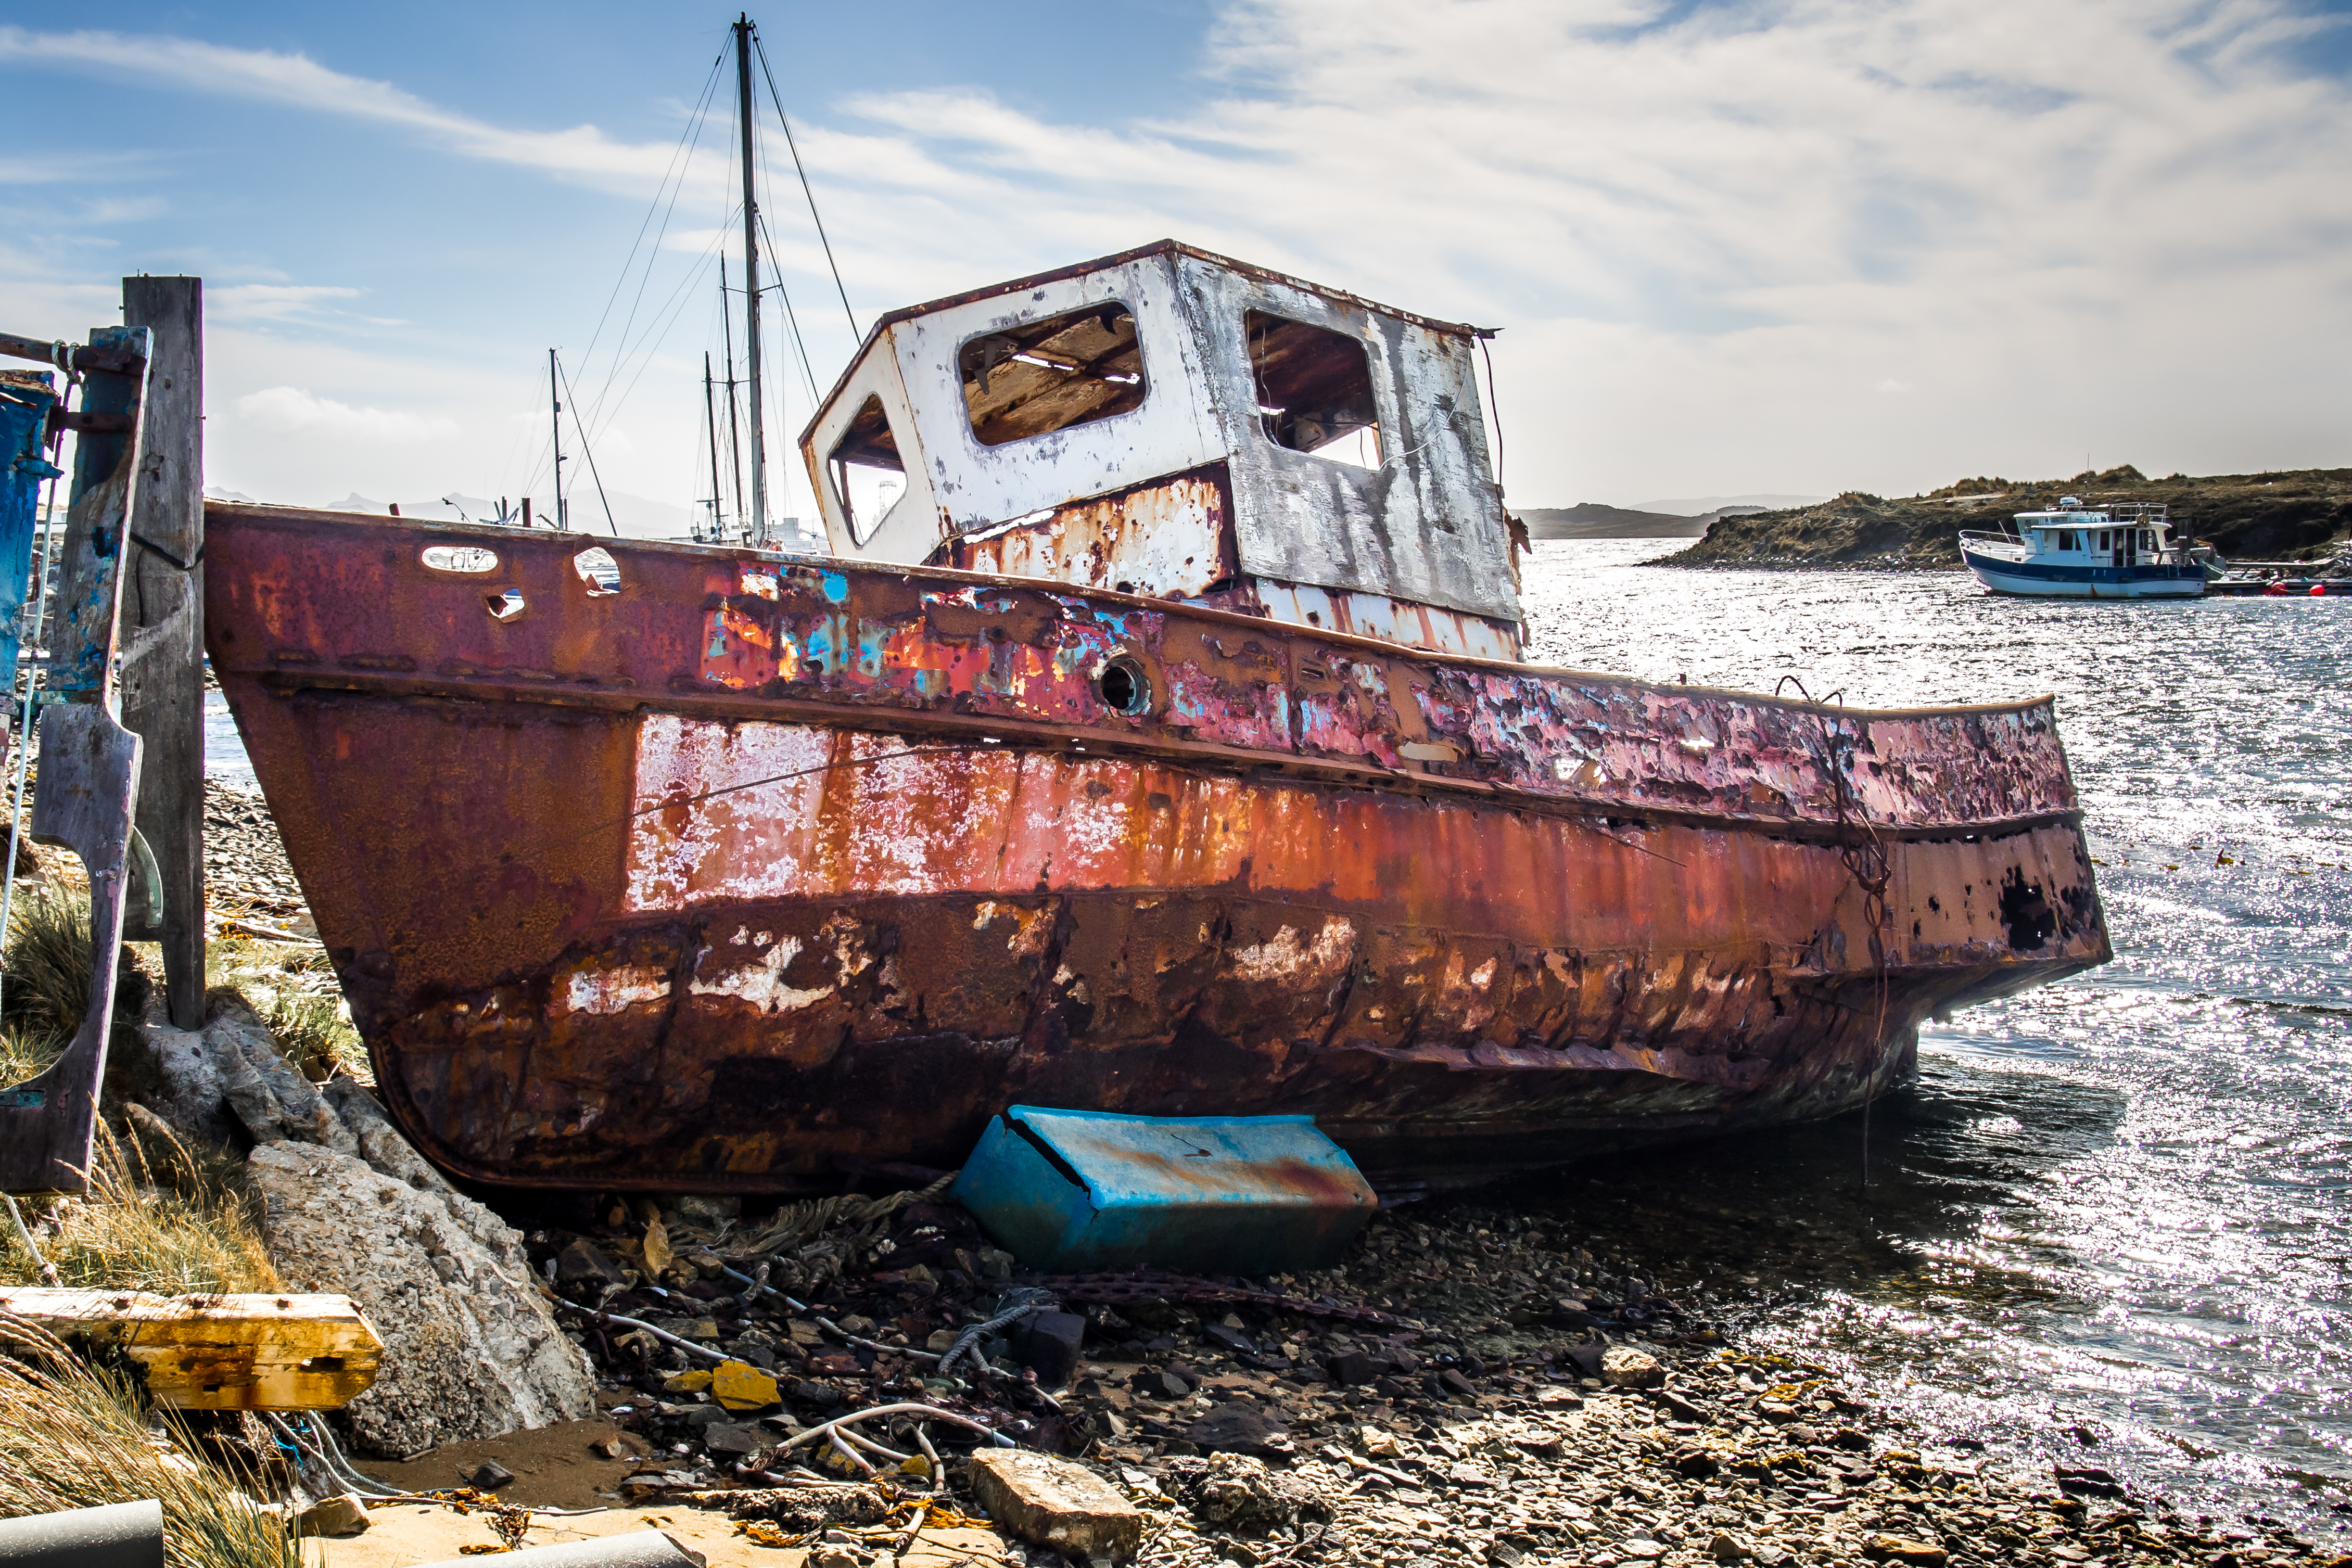 Shipwreck, Abandoned, Summer, Sand, Scenery, HQ Photo